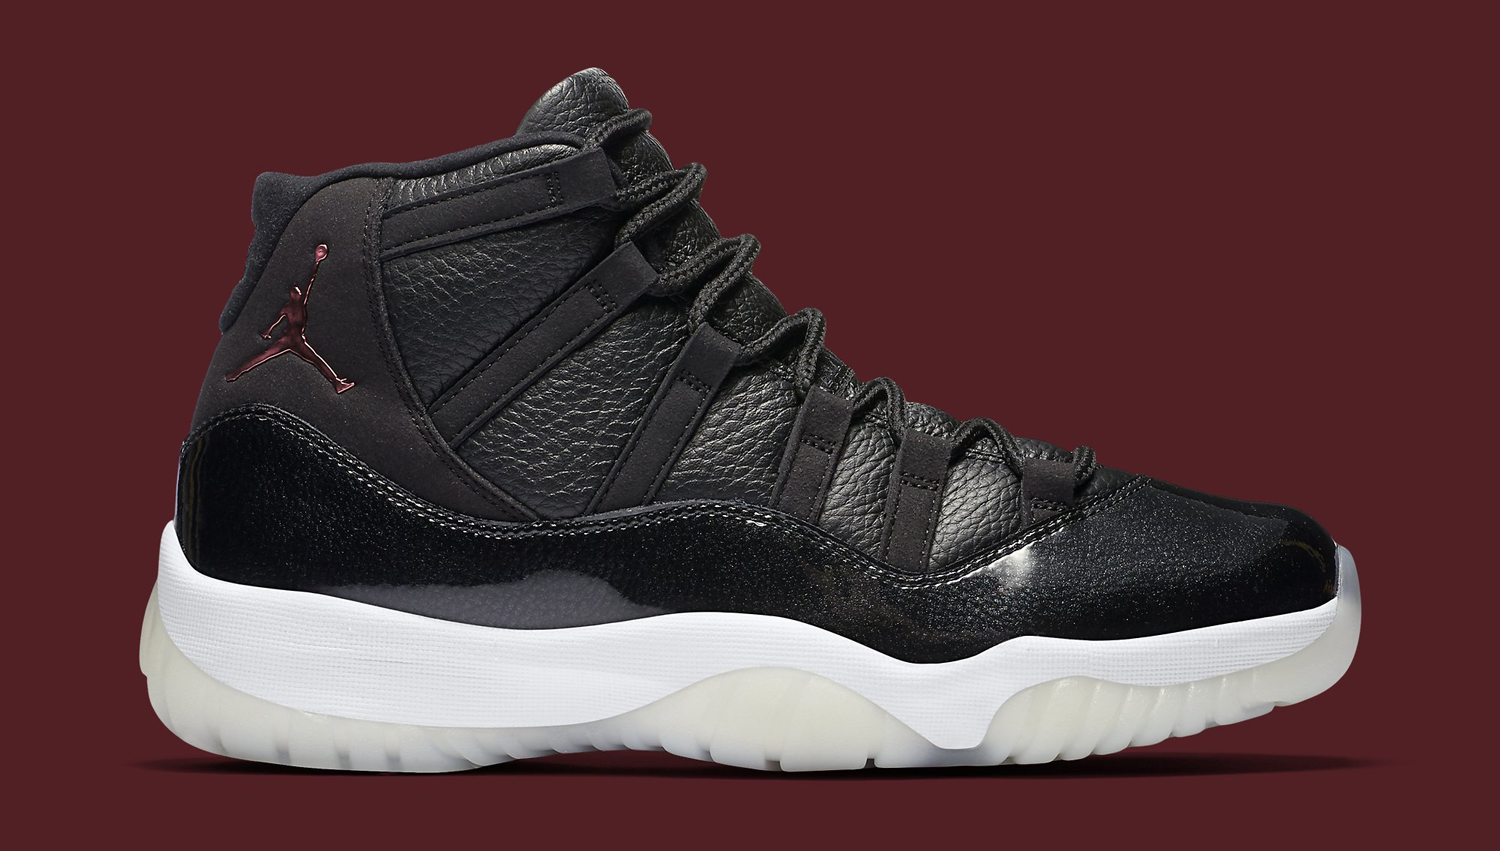 air jordan 11 retro 72-10 restocking